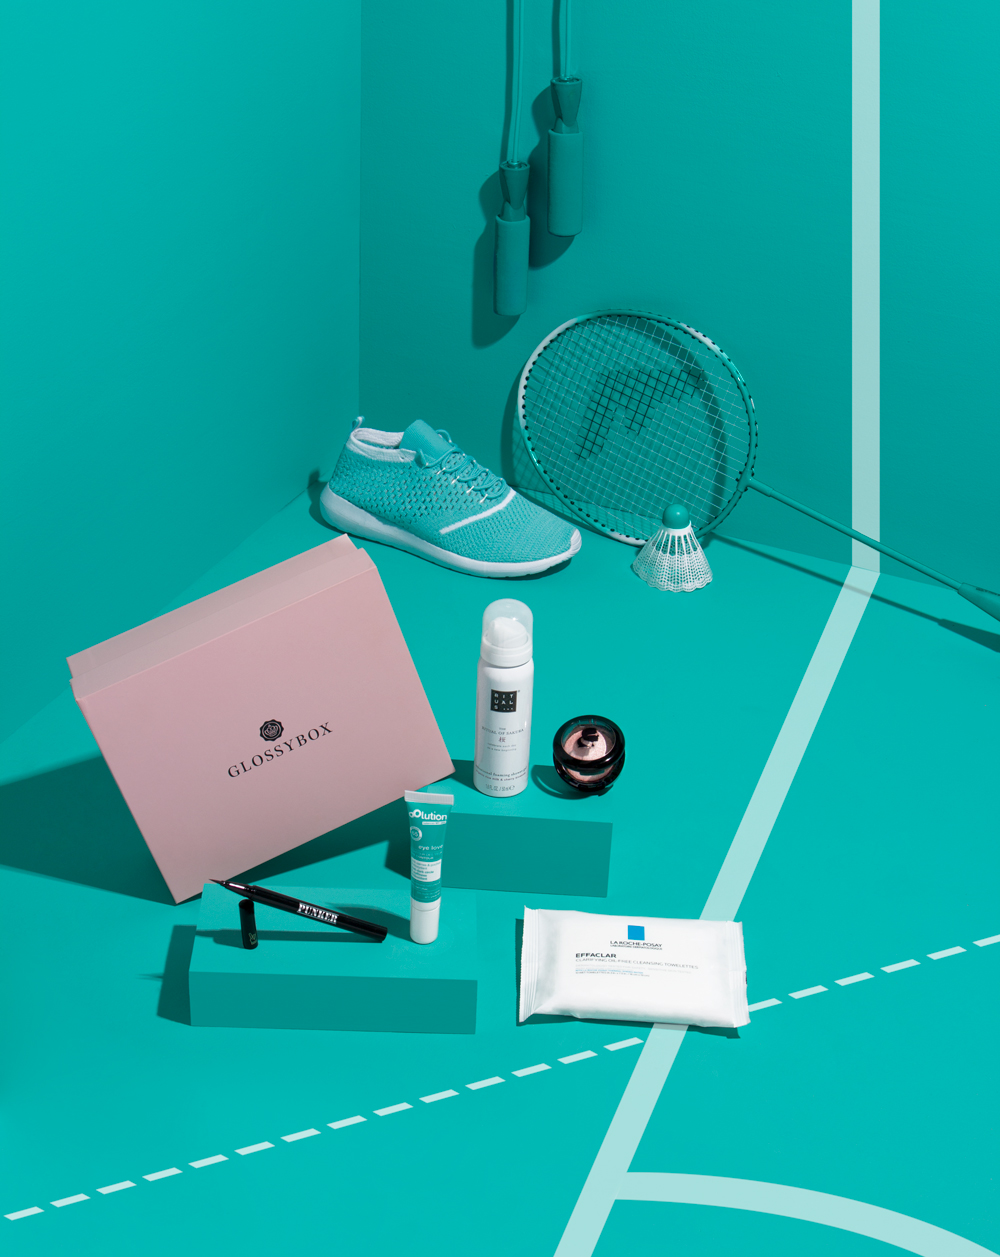 The box was curated with brands including  Rituals, Karl Lagerfeld + Model Co ,  La Roche-Posay  and  Ardency inn .